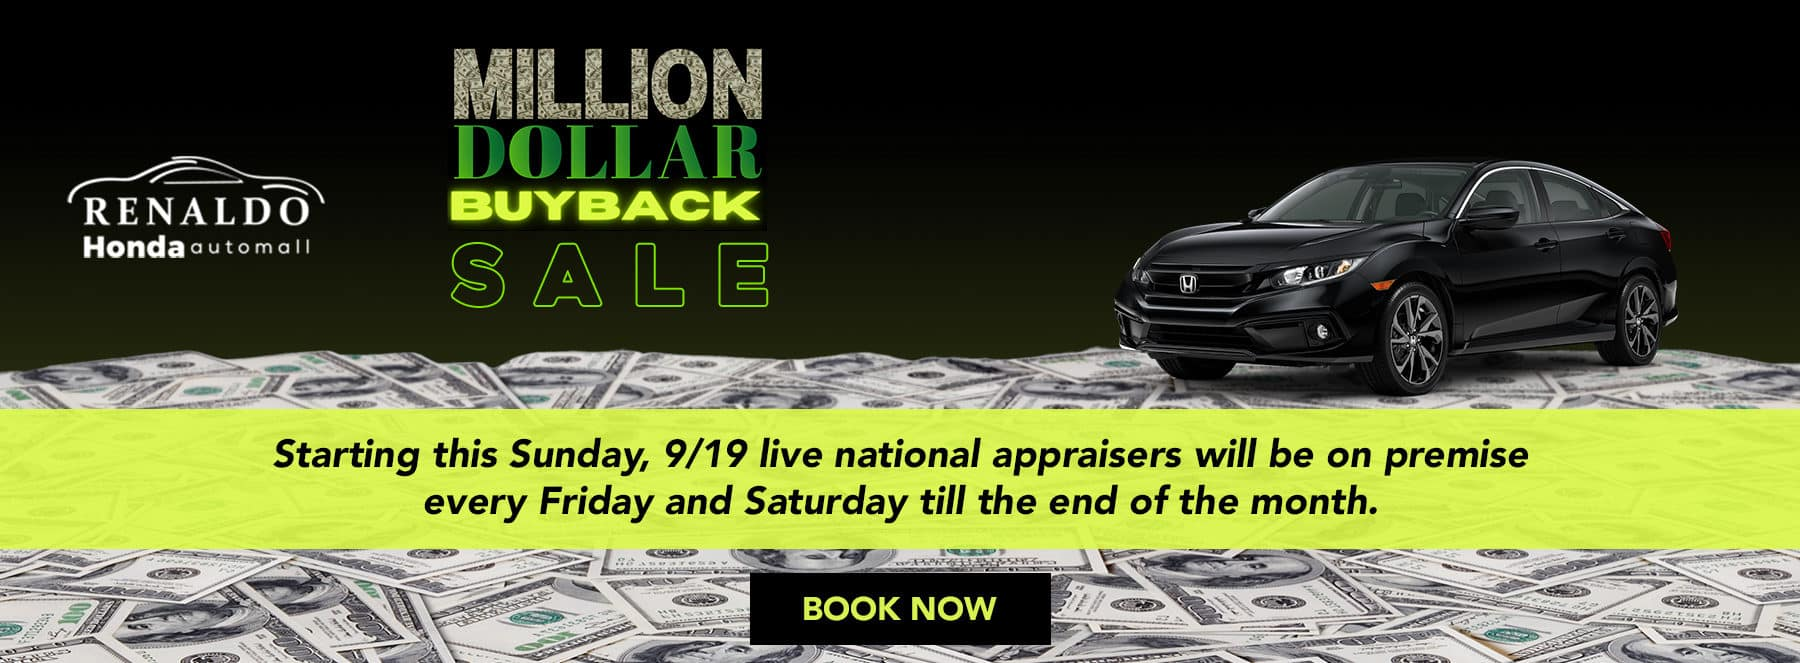 Million Dollar Buyback Event Subtext: Starting this Sunday, 9/12 live national appraisers will be on premise every Friday and Saturday till the end of the month.